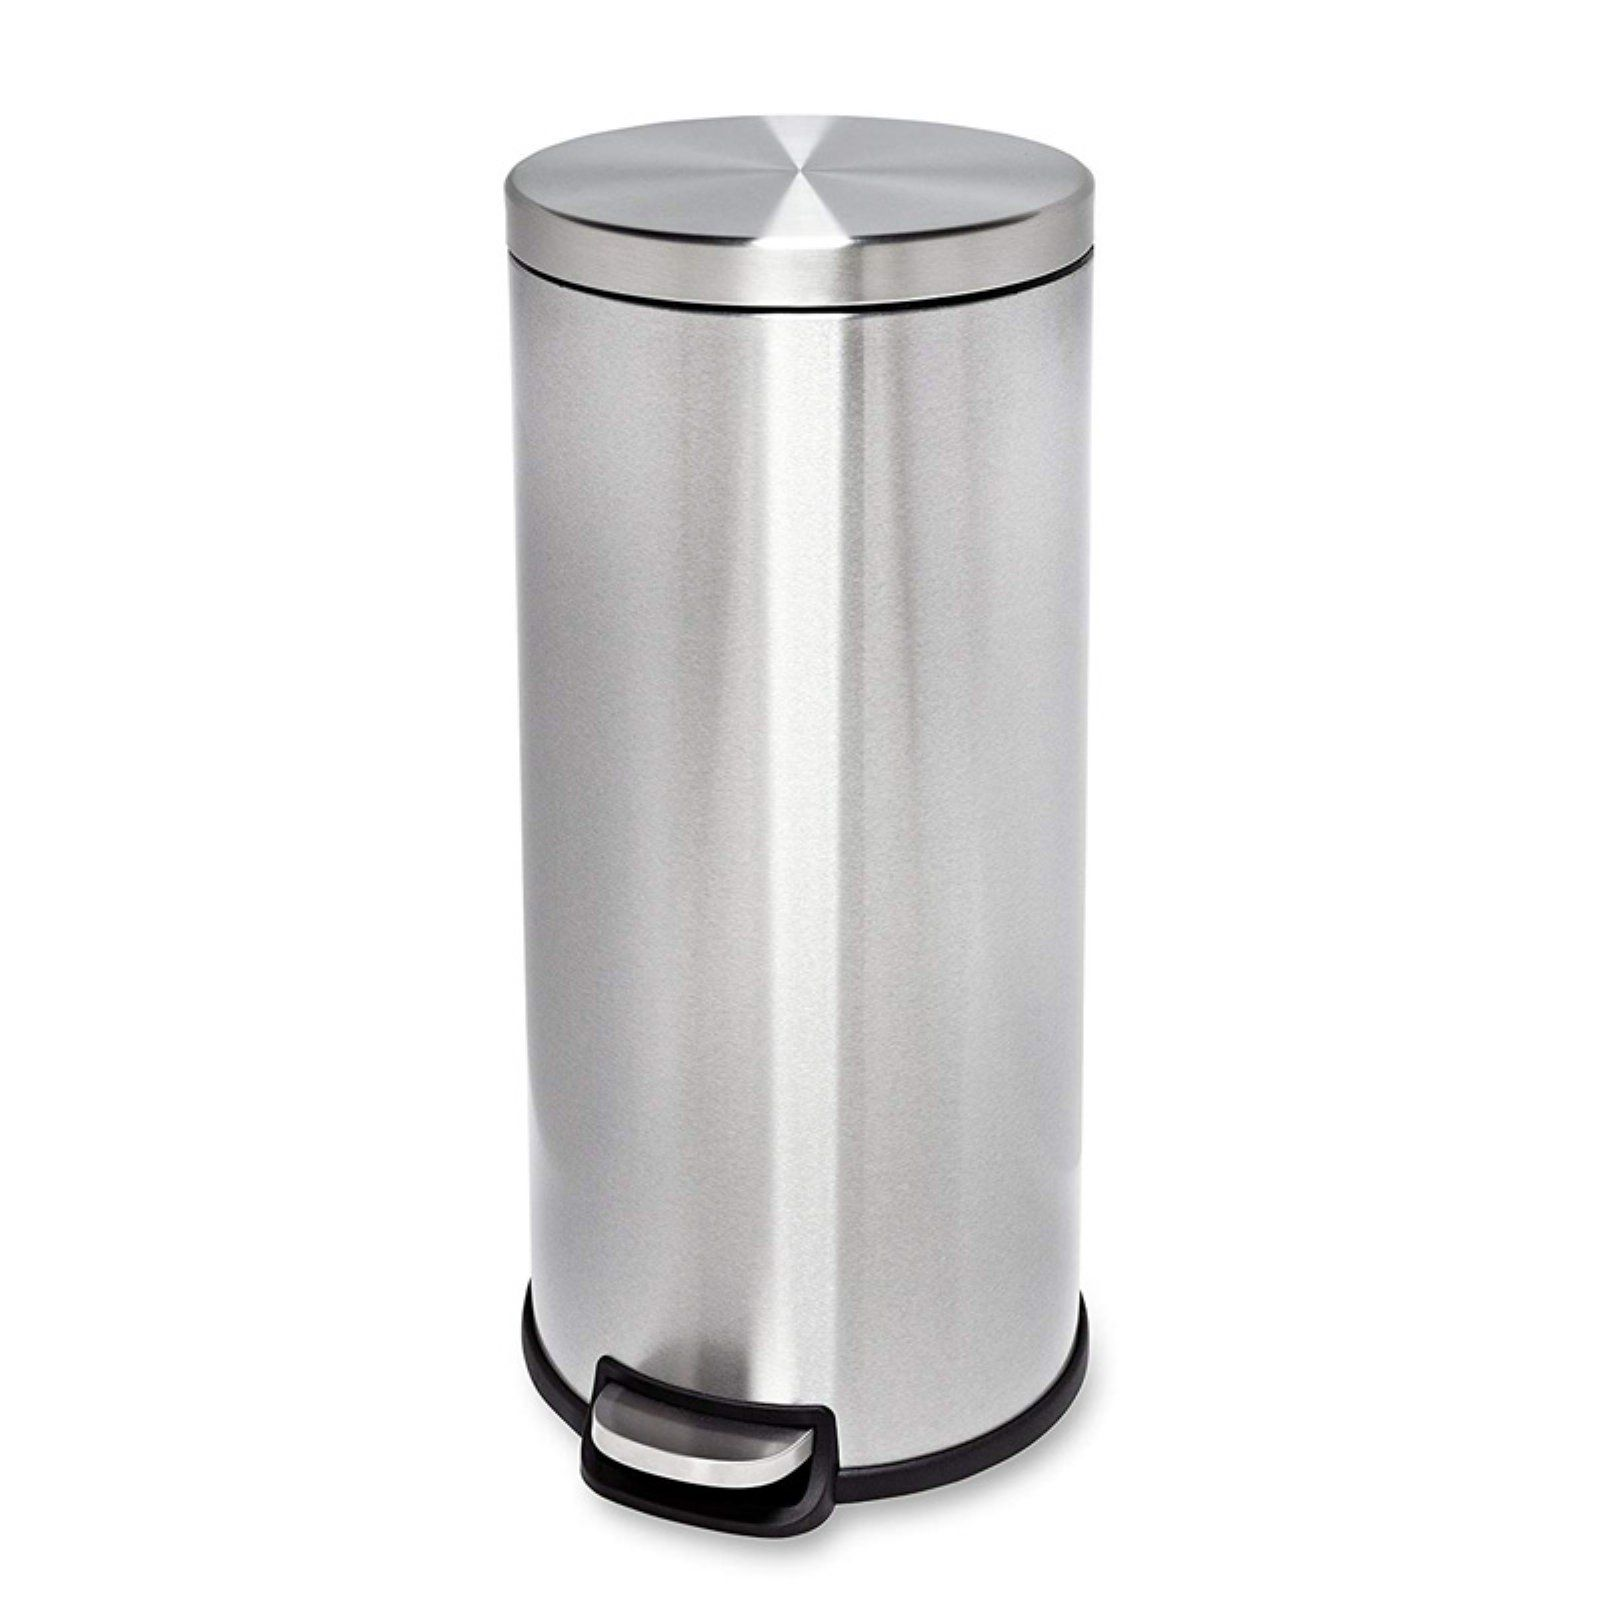 Honey Can Do 30l Stainless Steel Step Trash Can Trash Can Honey